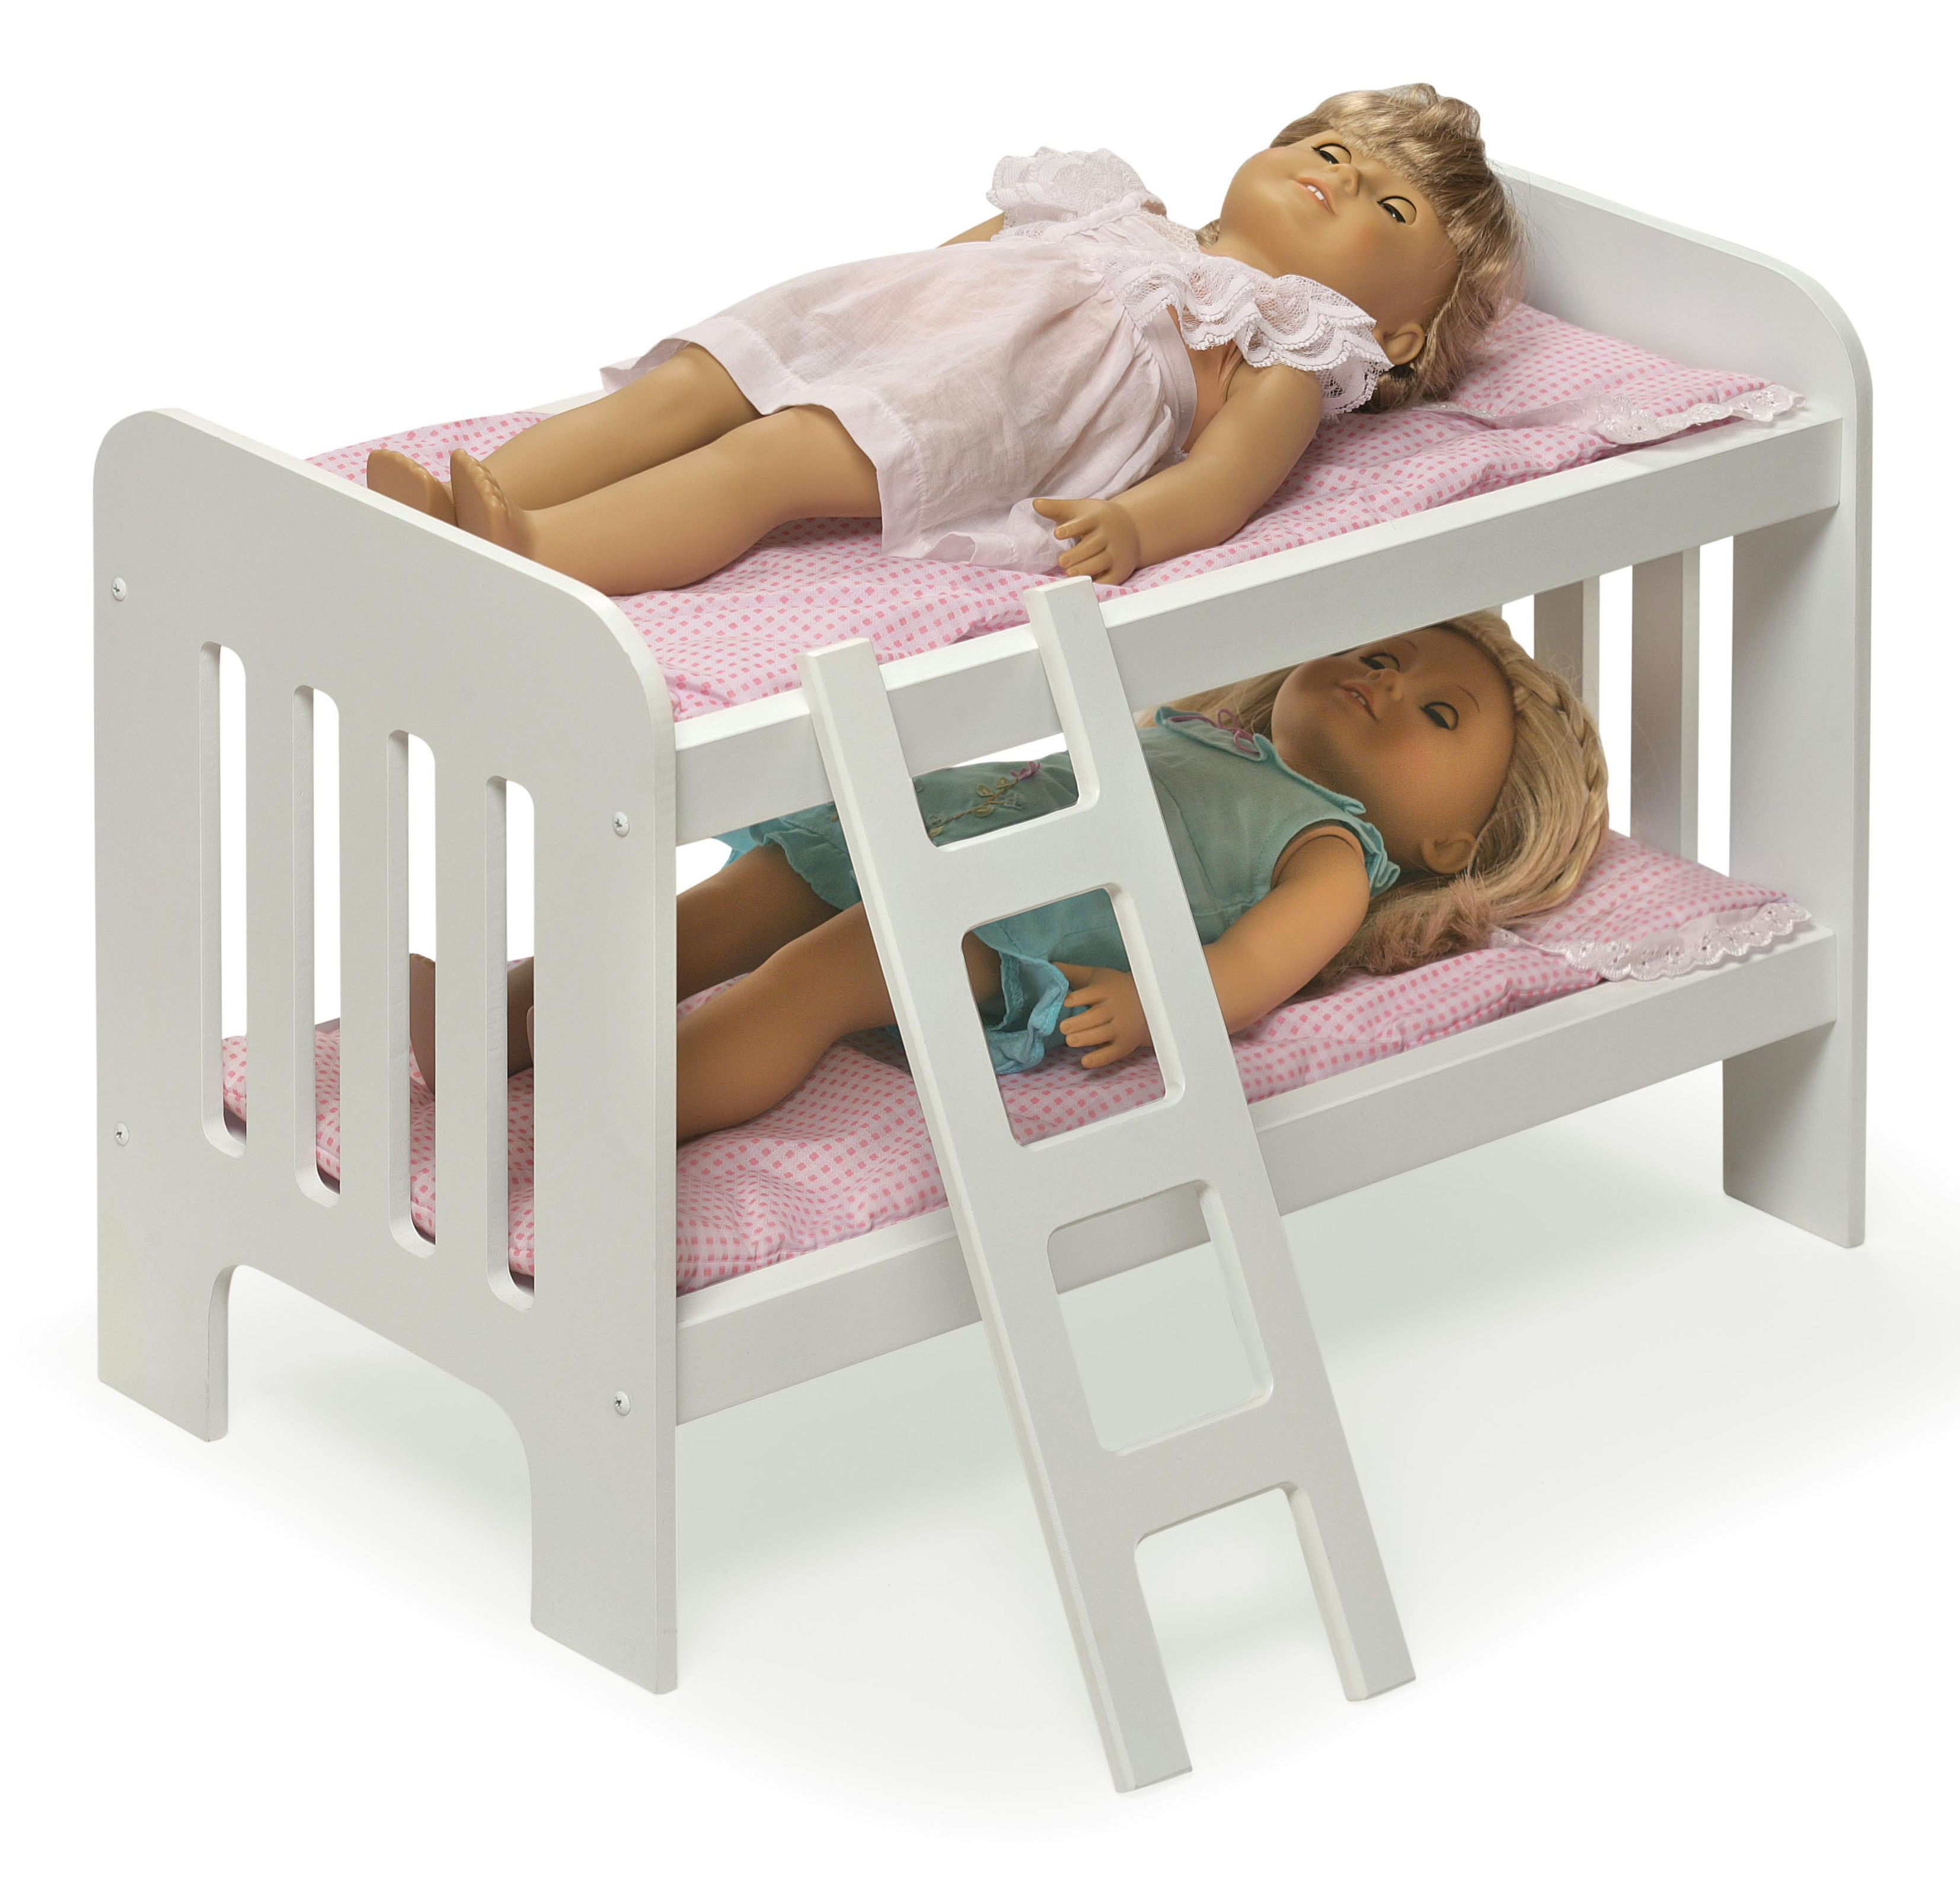 Wondrous Badger Basket Gingham Doll Bunk Bed With Bedding And Ladder Home Interior And Landscaping Ologienasavecom